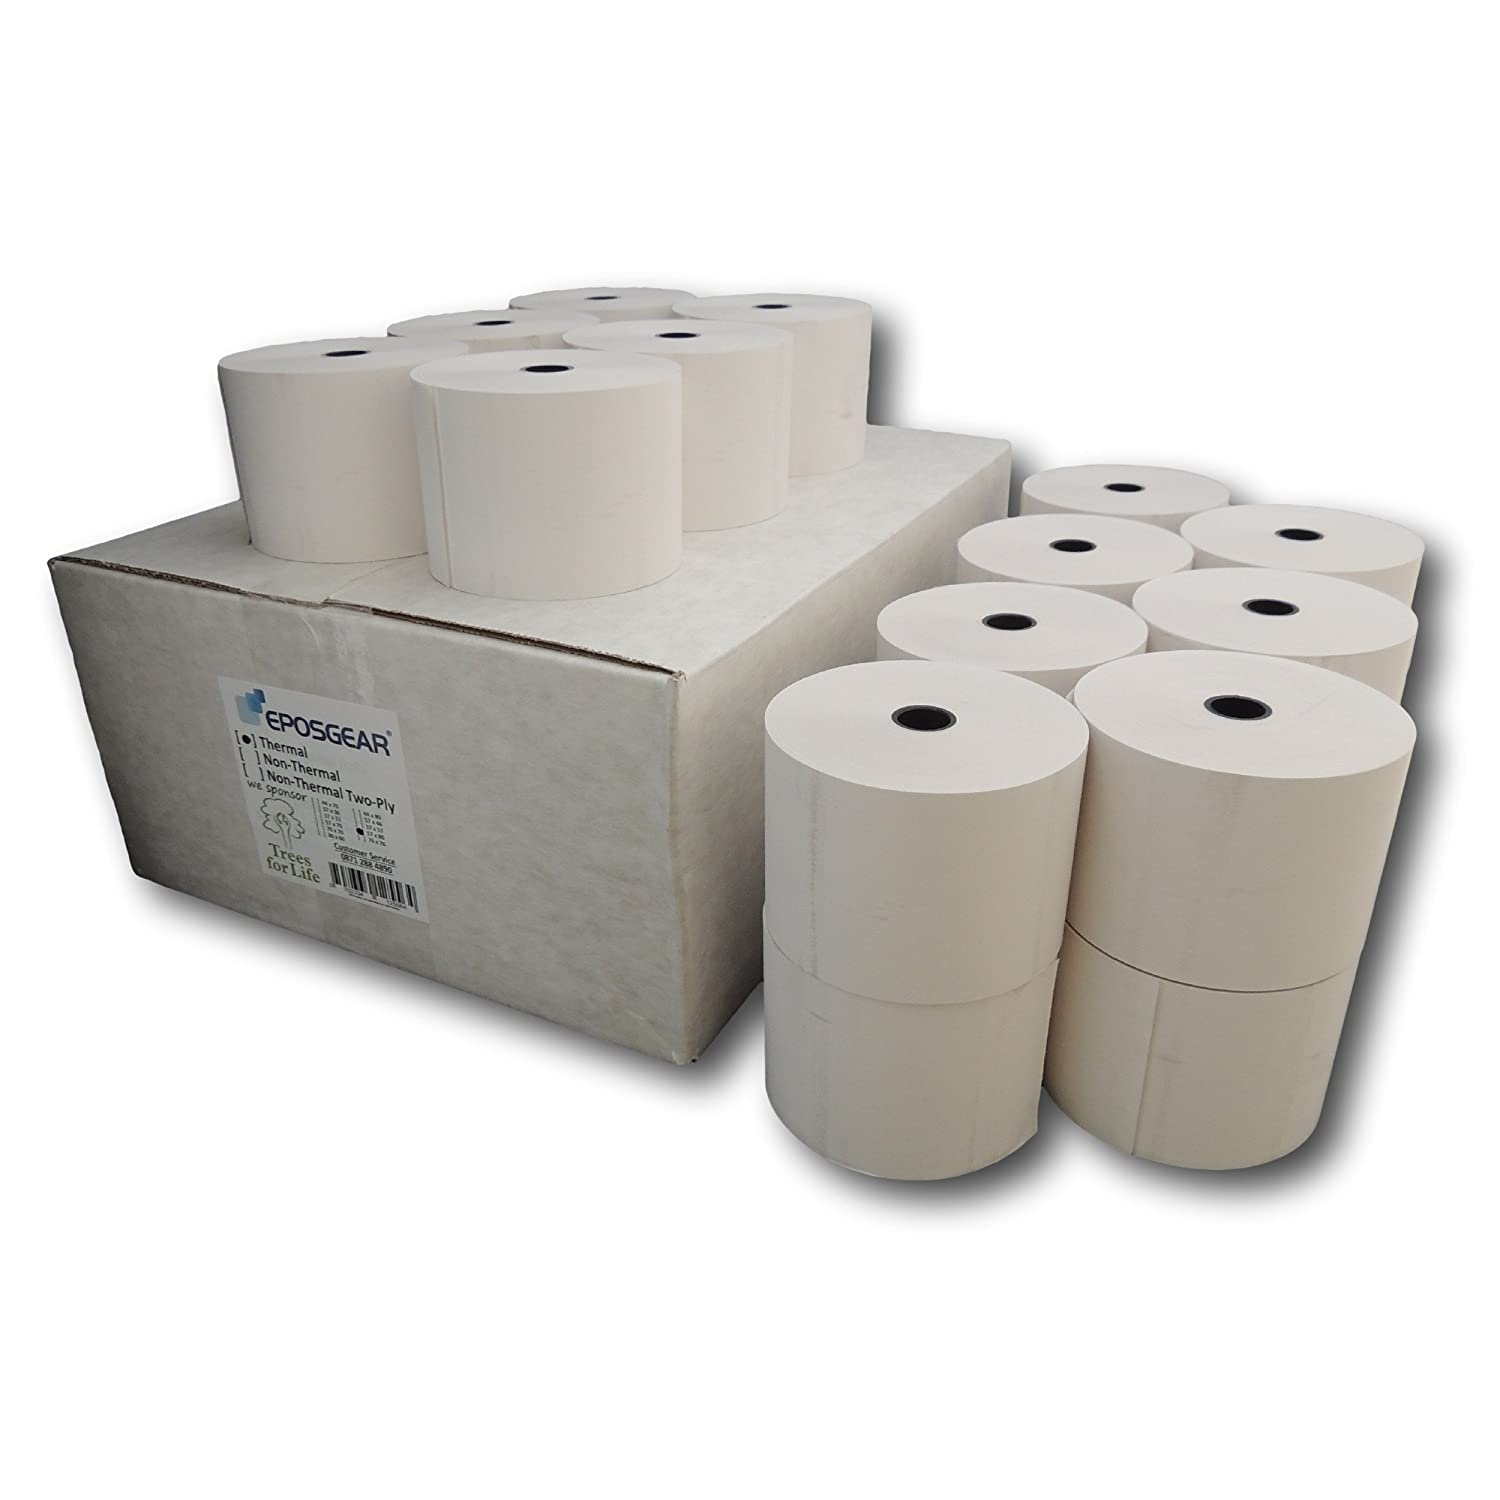 Thermal Paper Compatible with 2 1//4 x 165 W 57mmxL50m POS Receipt Paper 2 1//4 x 164 Cash Register Roll 50 rolls By Hapaper Brand